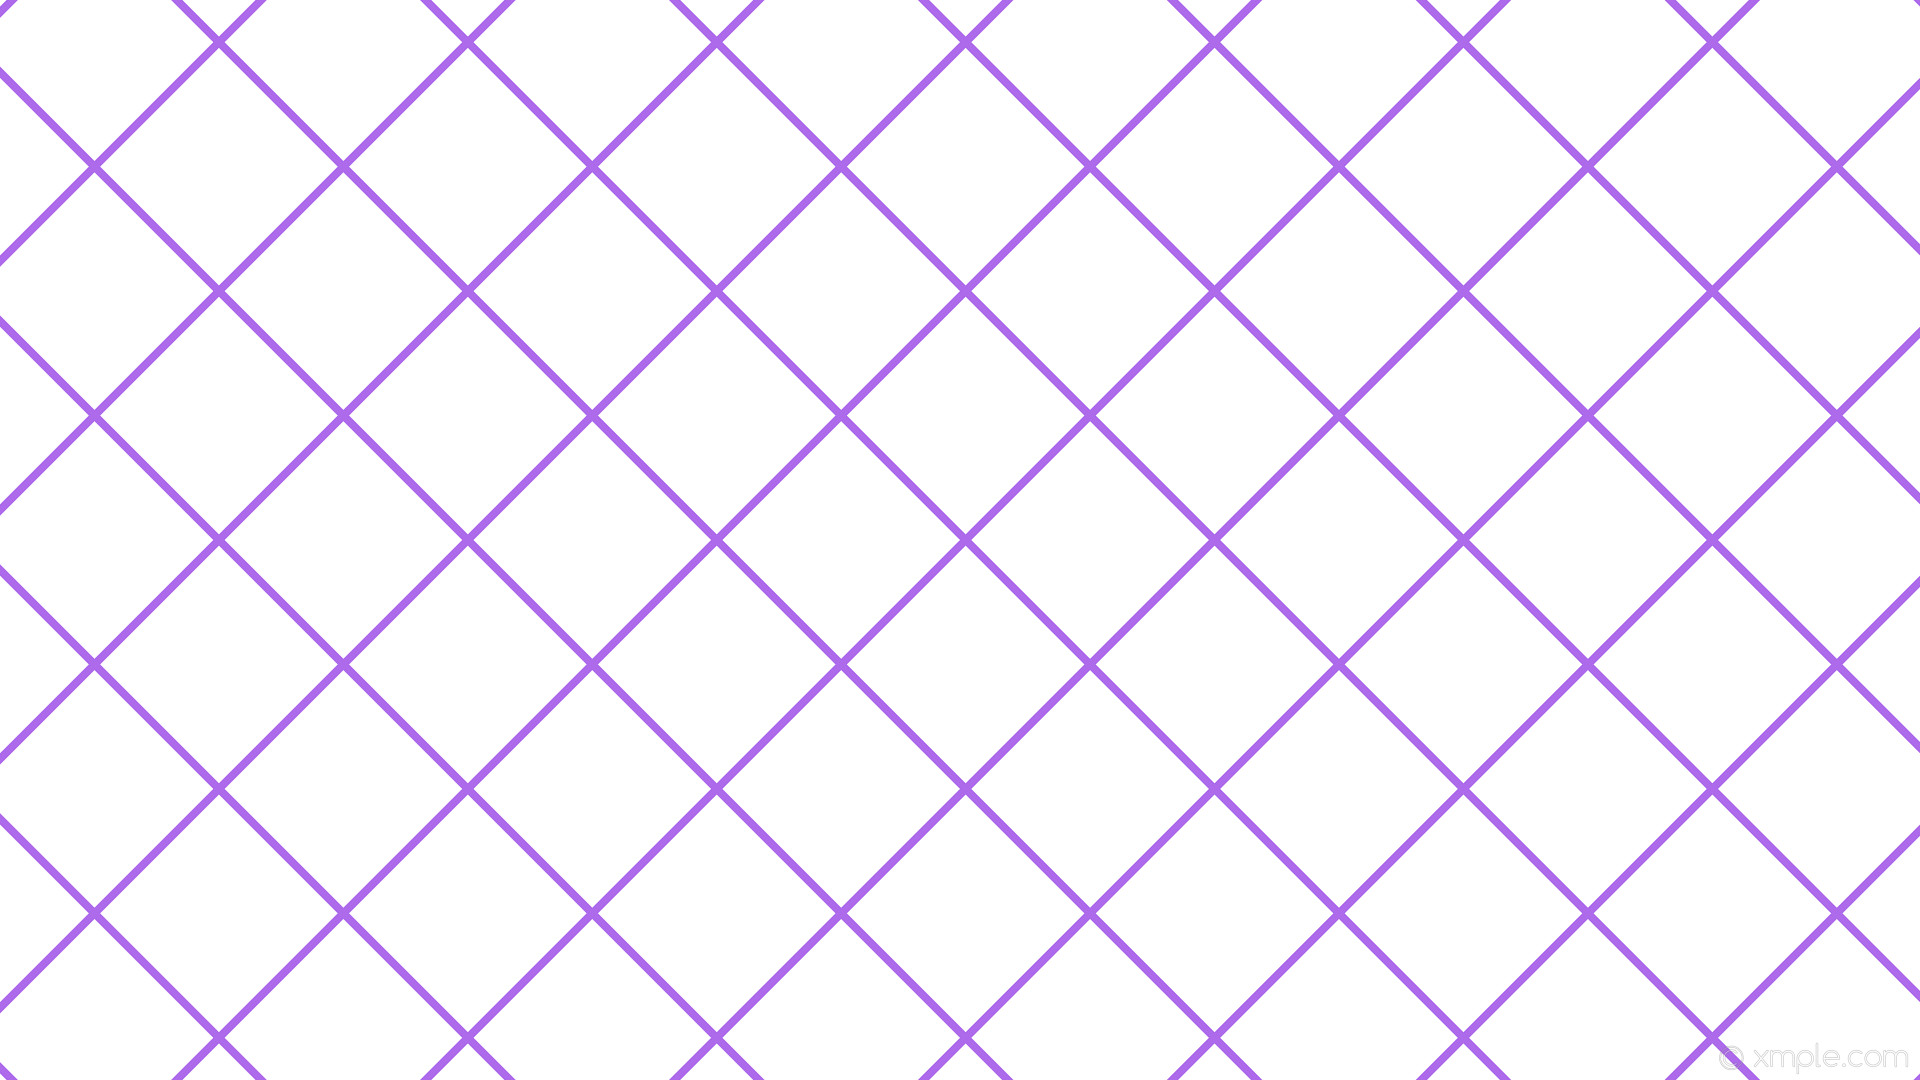 1920x1080 wallpaper graph paper purple white grid blue violet #ffffff #8a2be2 45° 8px  176px